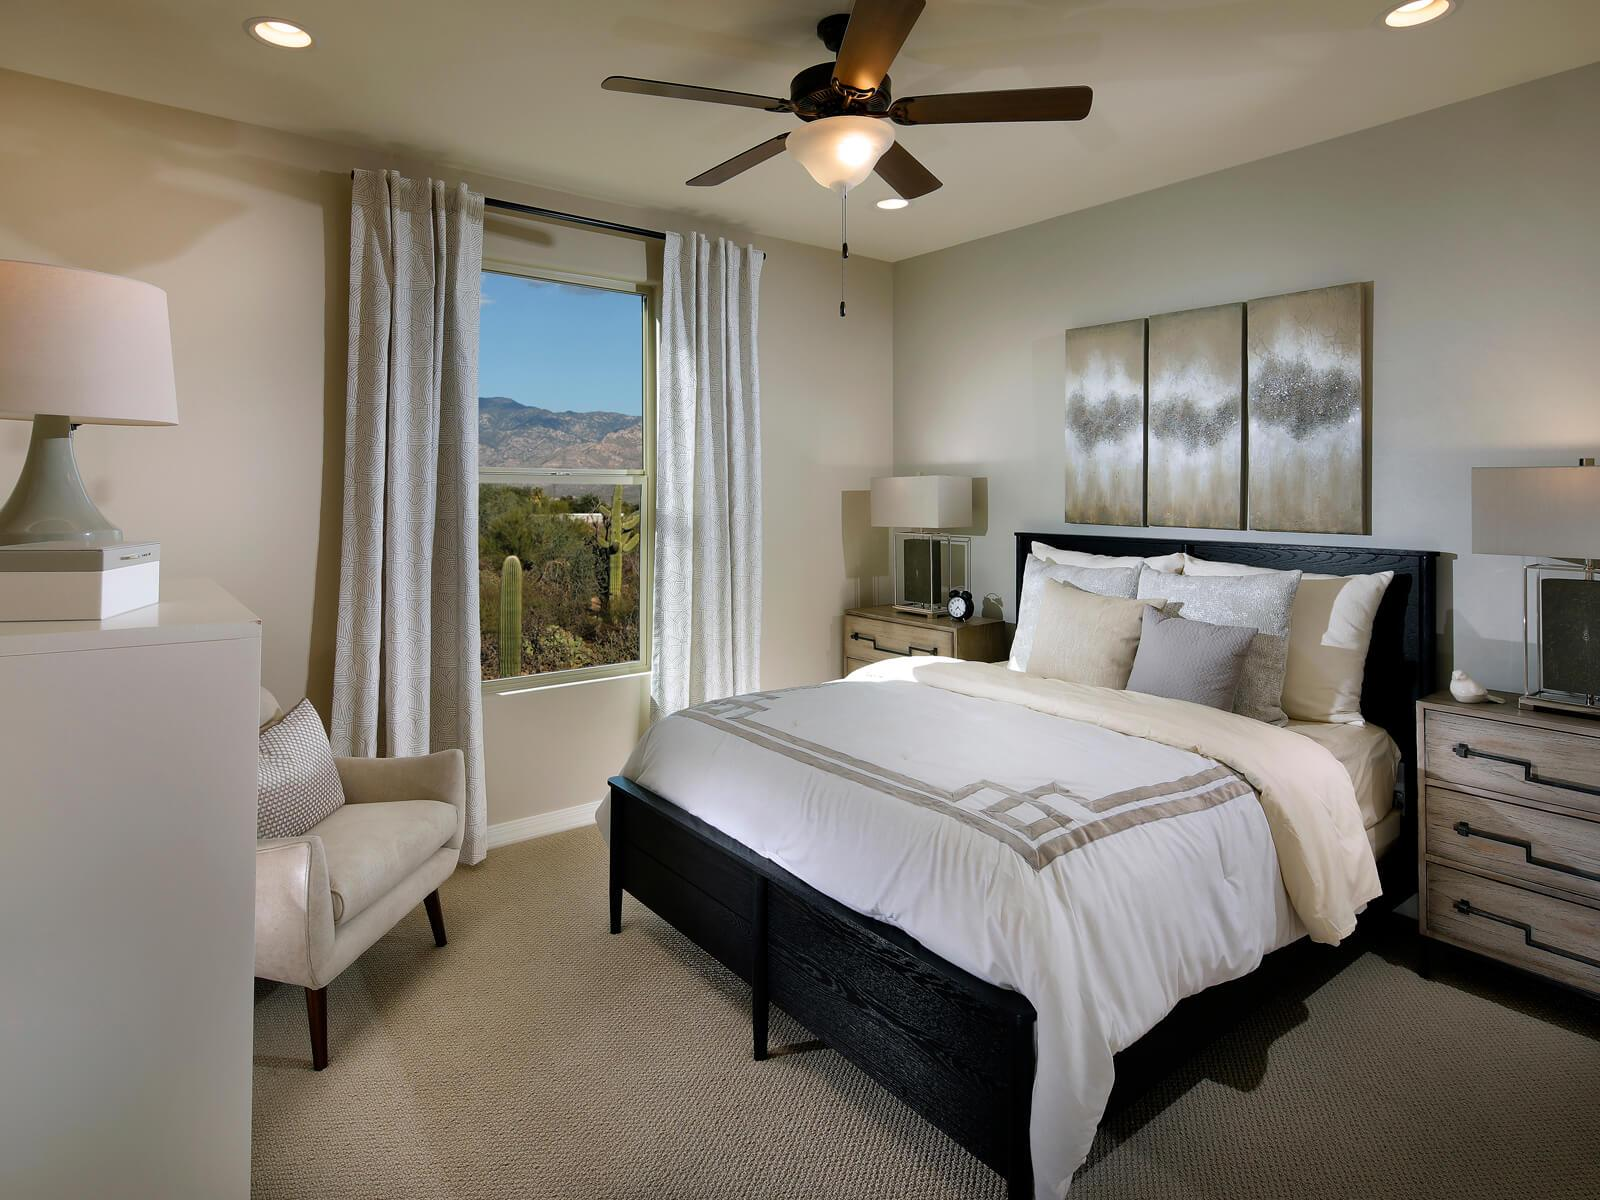 Bedroom featured in the Parish By Meritage Homes in Tucson, AZ